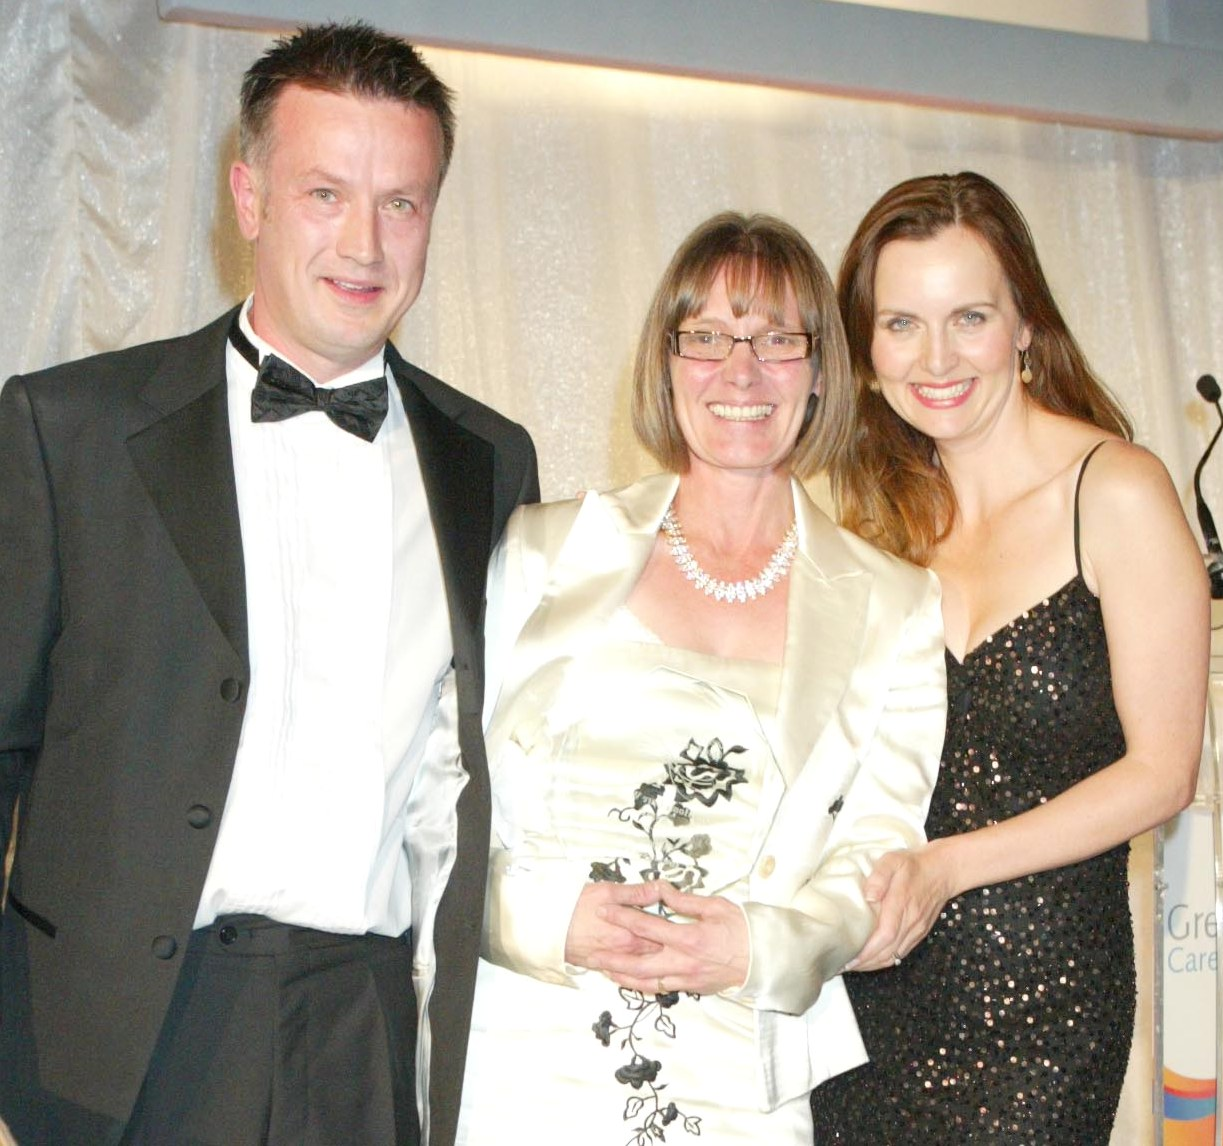 Home Instead Barnet CAREgiver Mary Hayes receiving her '2011 Home Care Worker' award from Jason Clayburn and TV presenter Debra Stephenson